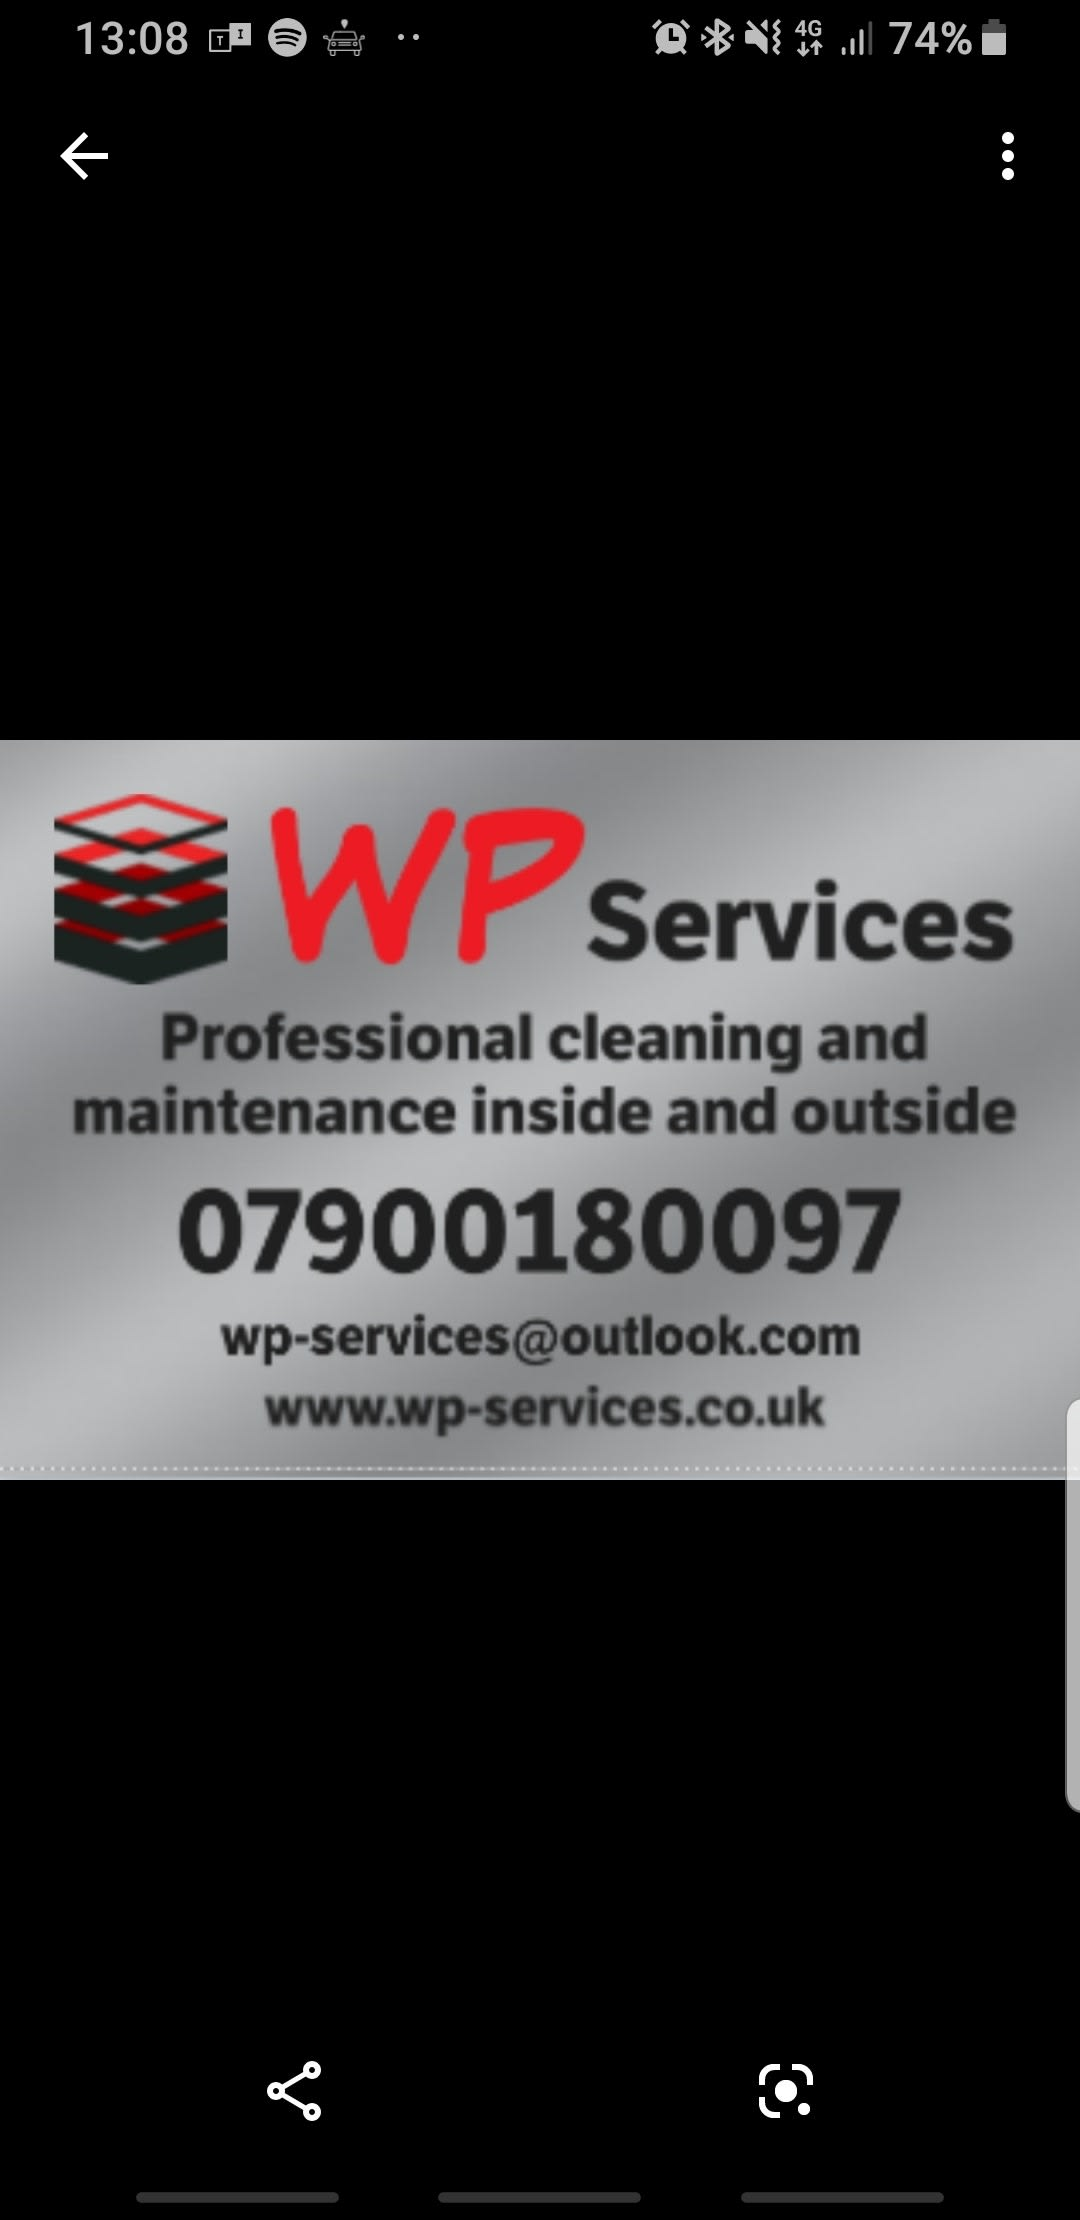 WP Services